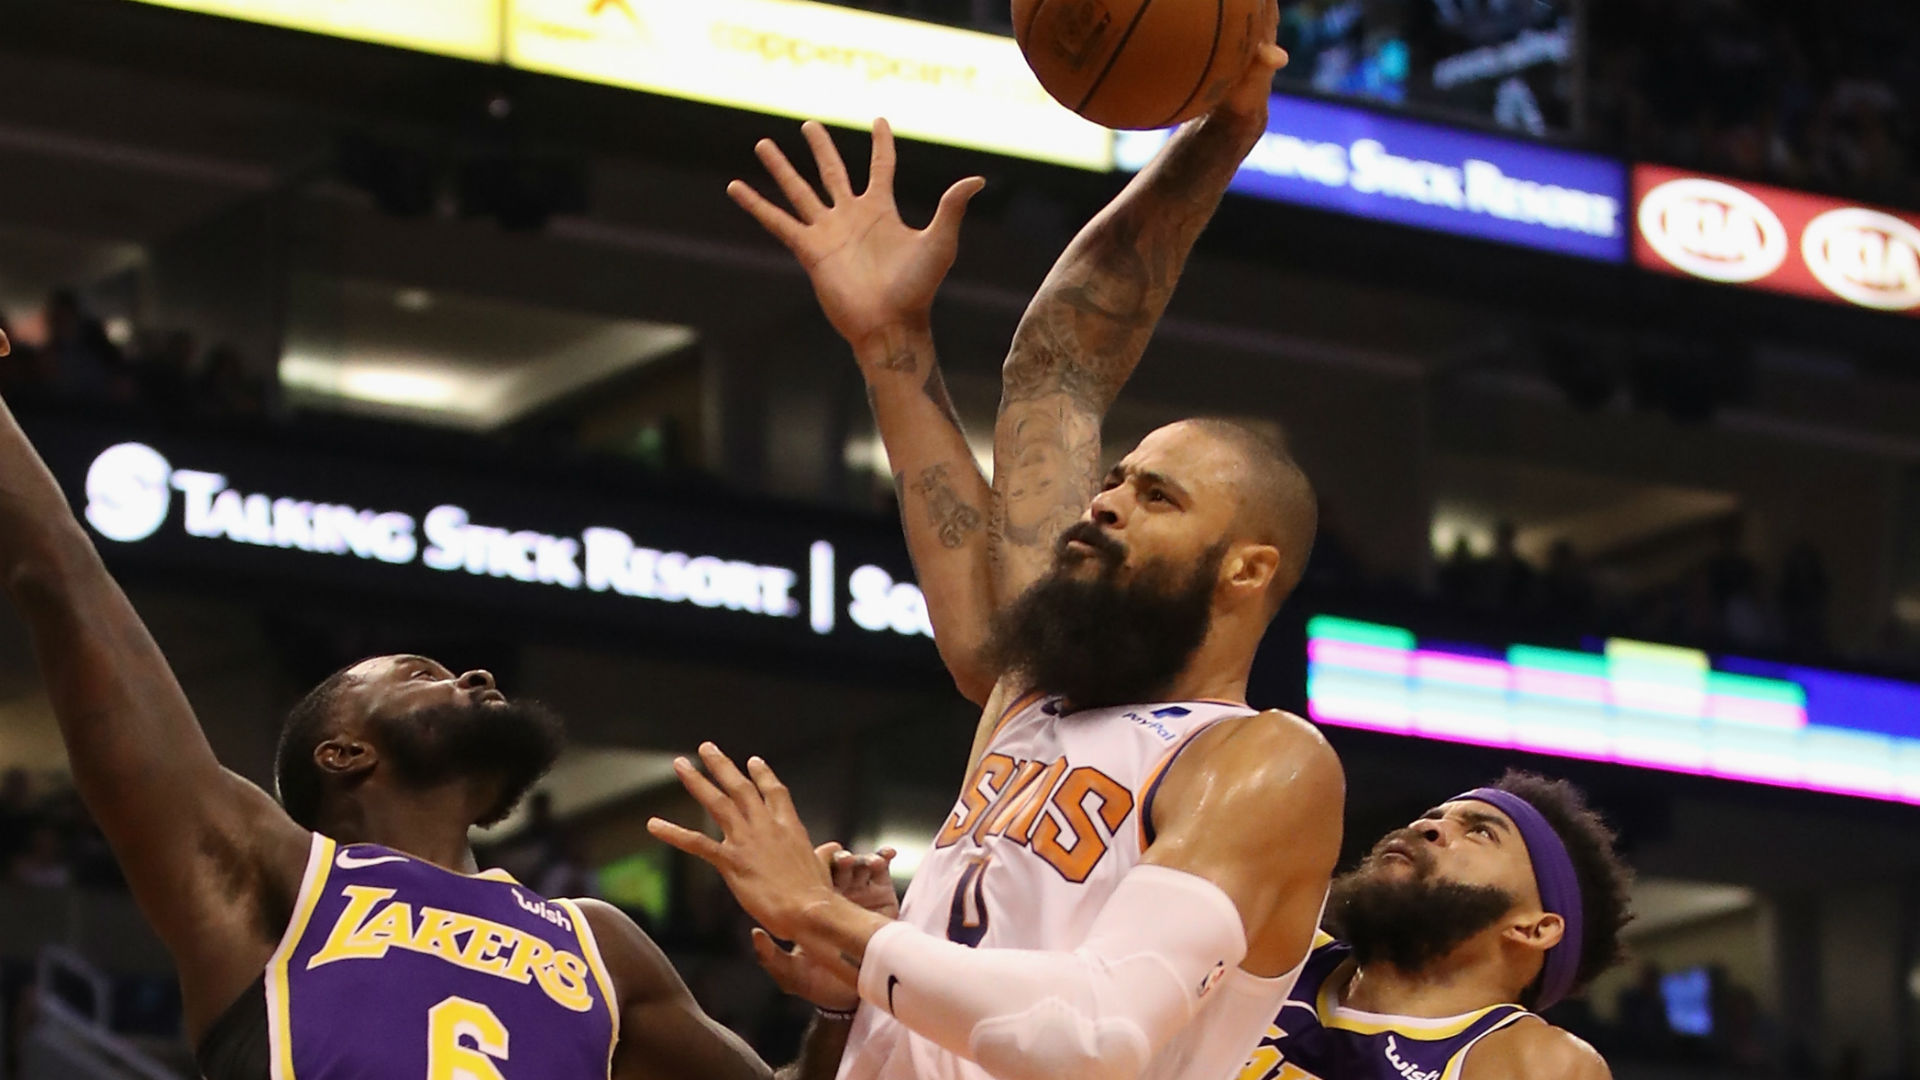 Tyson Chandler To Sign With Lakers, After Buyout With Phoenix Suns